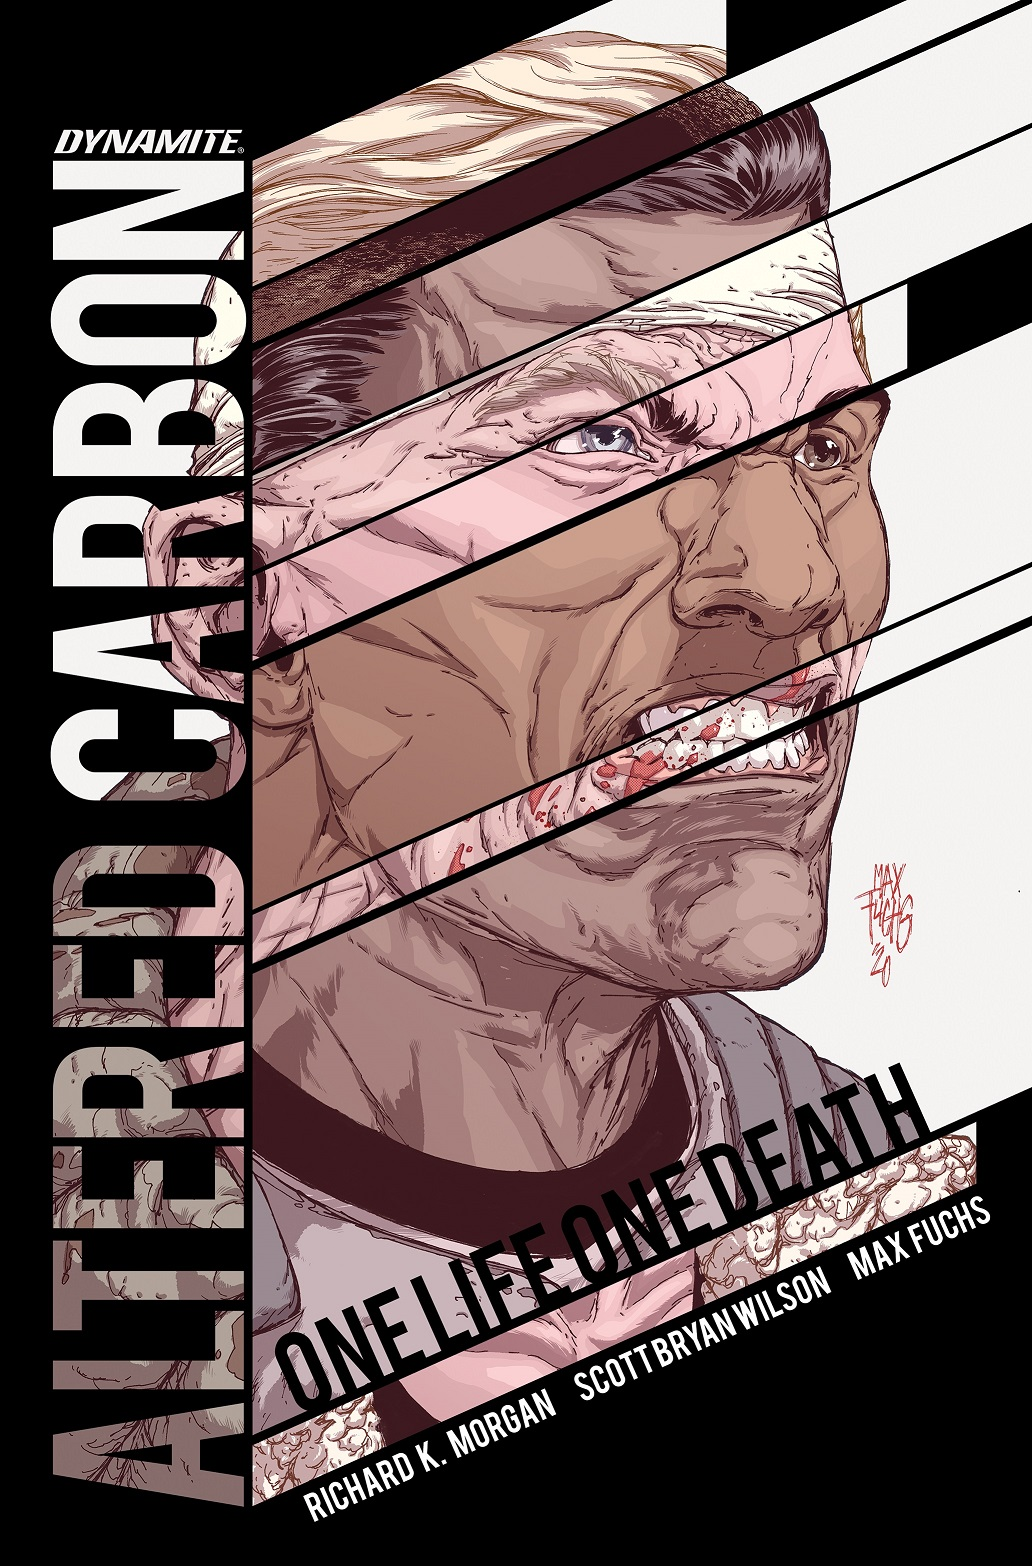 AlteredCarbonOGN-Cov-Approved-Dress_1 Altered Carbon will return in 2021 in ONE LIFE, ONE DEATH